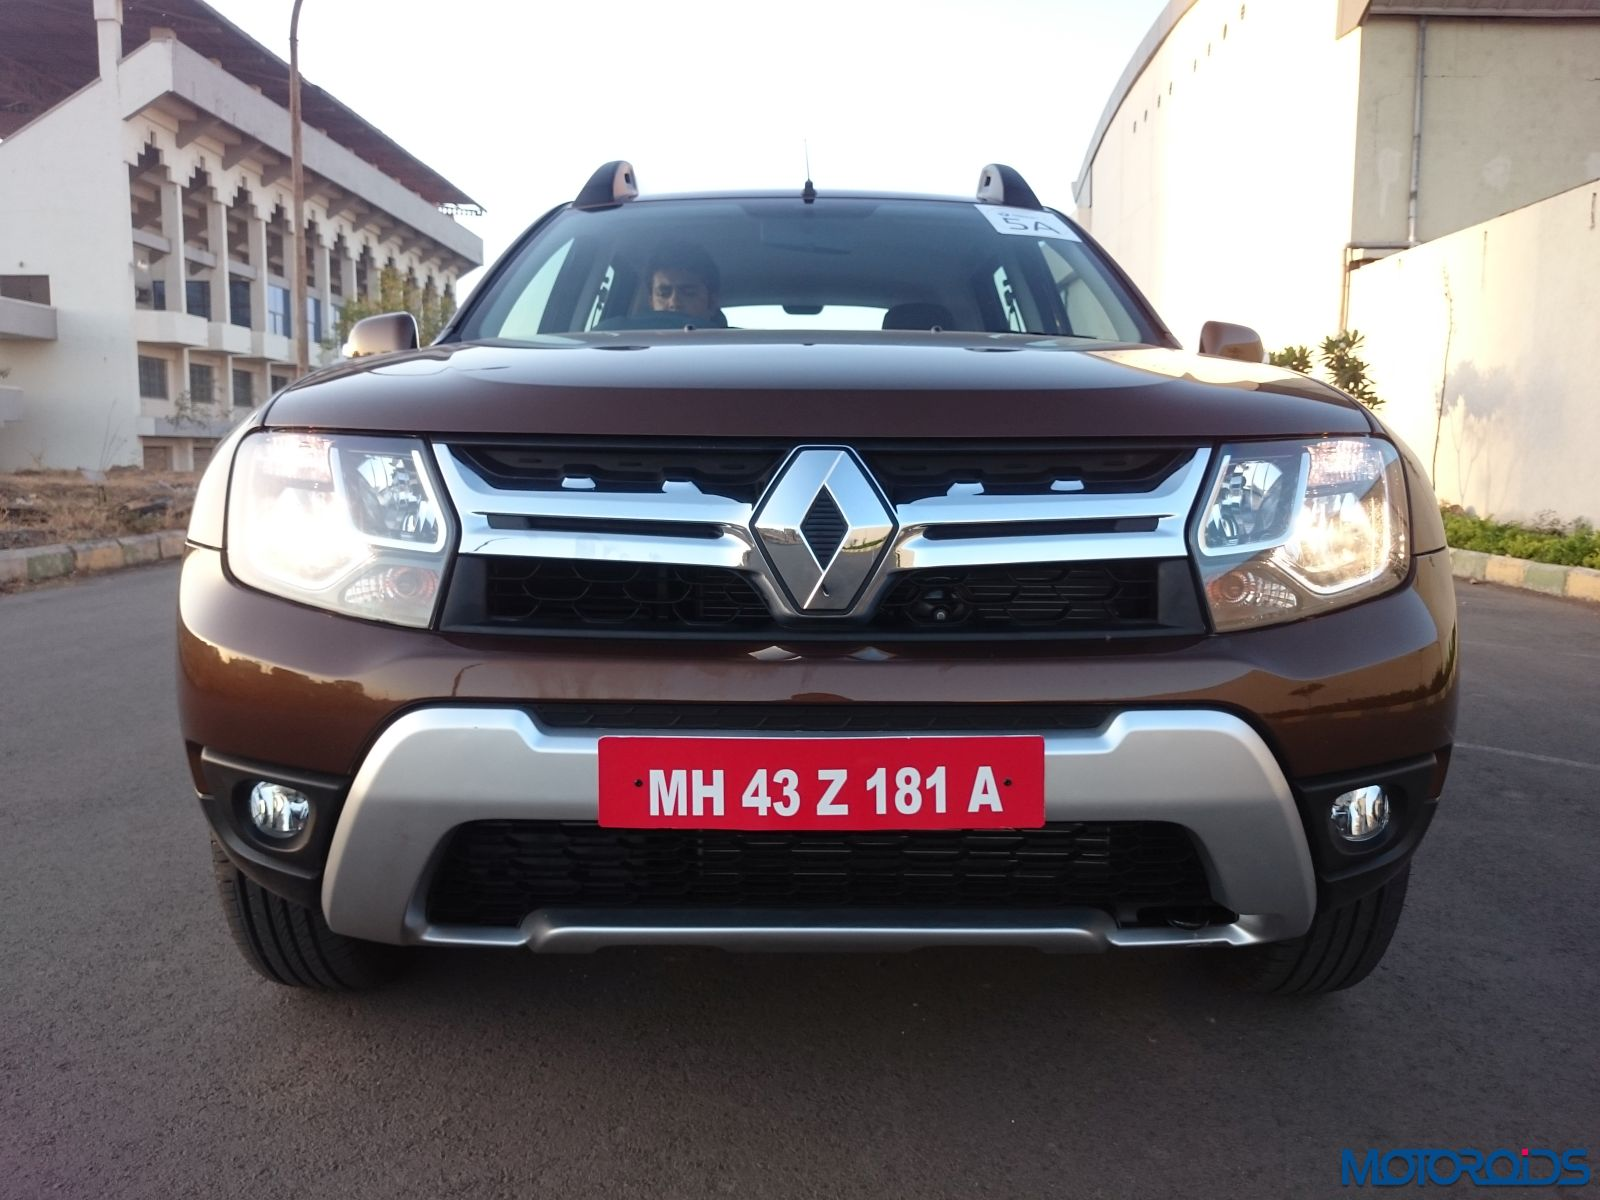 new 2016 renault duster facelift awd and amt review dusted and buffed motoroids. Black Bedroom Furniture Sets. Home Design Ideas